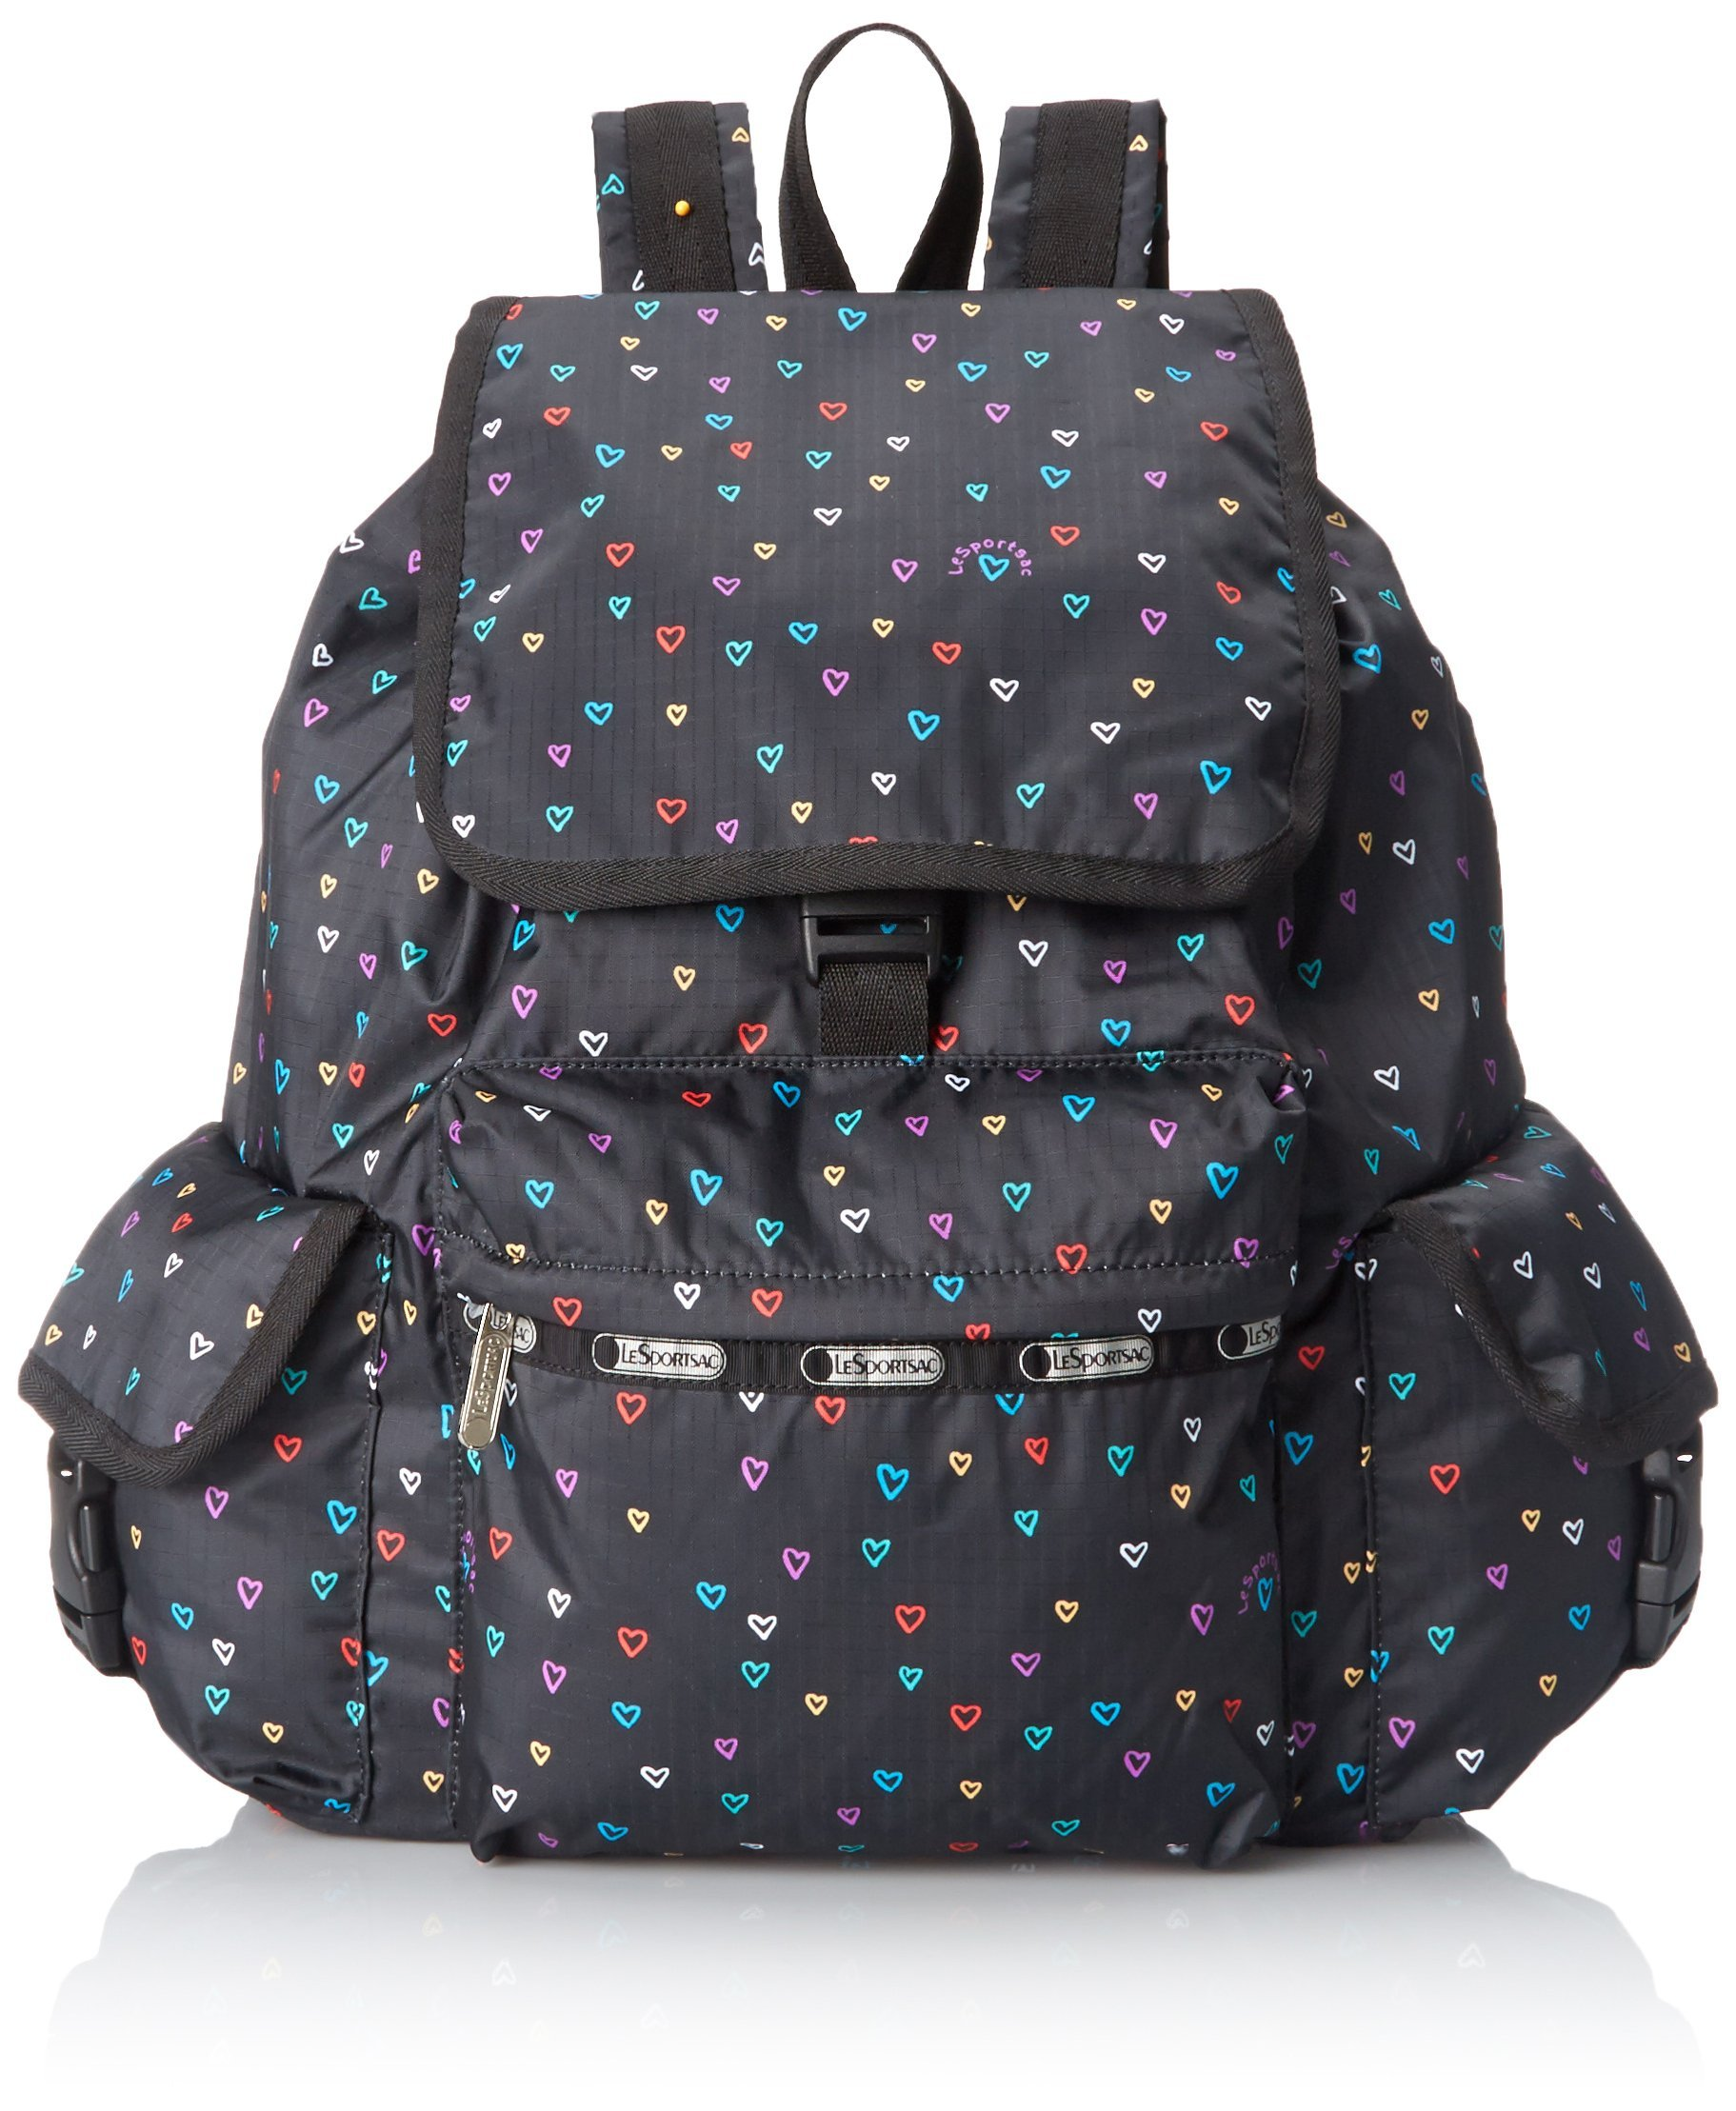 LeSportsac Voyager Backpack, Love Drops, One Size